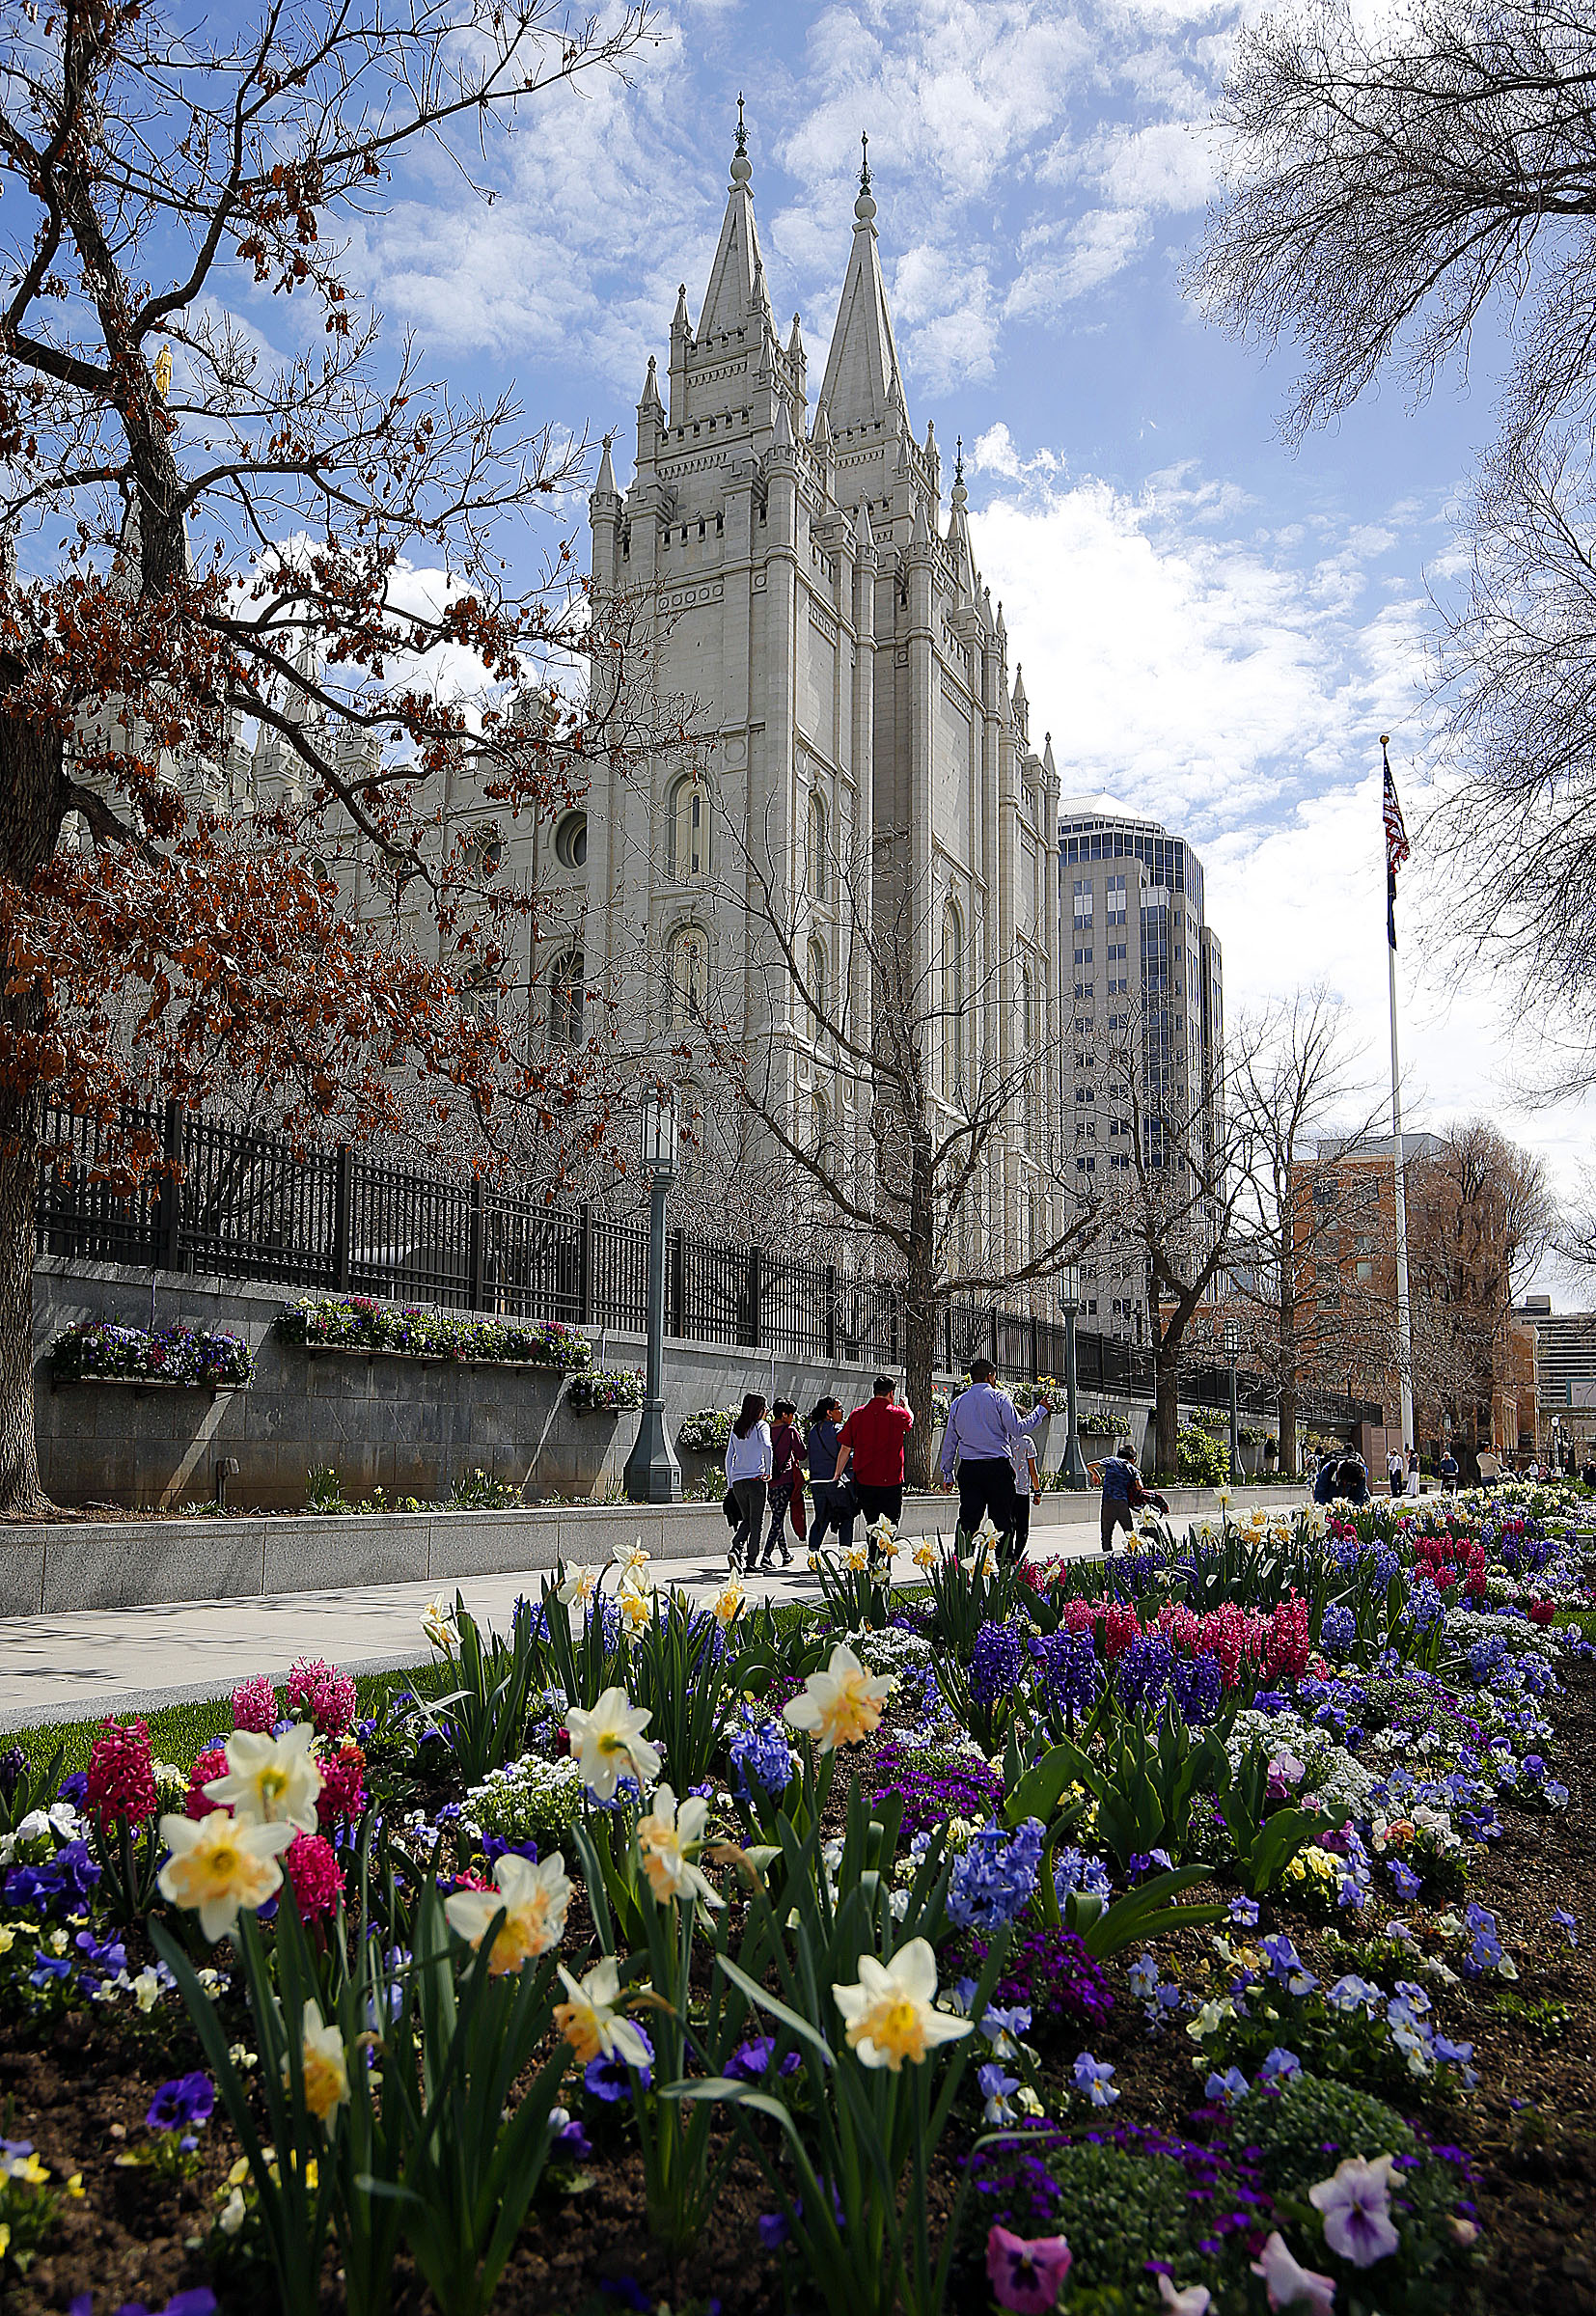 Visitors to Temple Square walk by flowers near the Salt Lake Temple of The Church of Jesus Christ of Latter-day Saints in Salt Lake City on Friday, April 5, 2019.